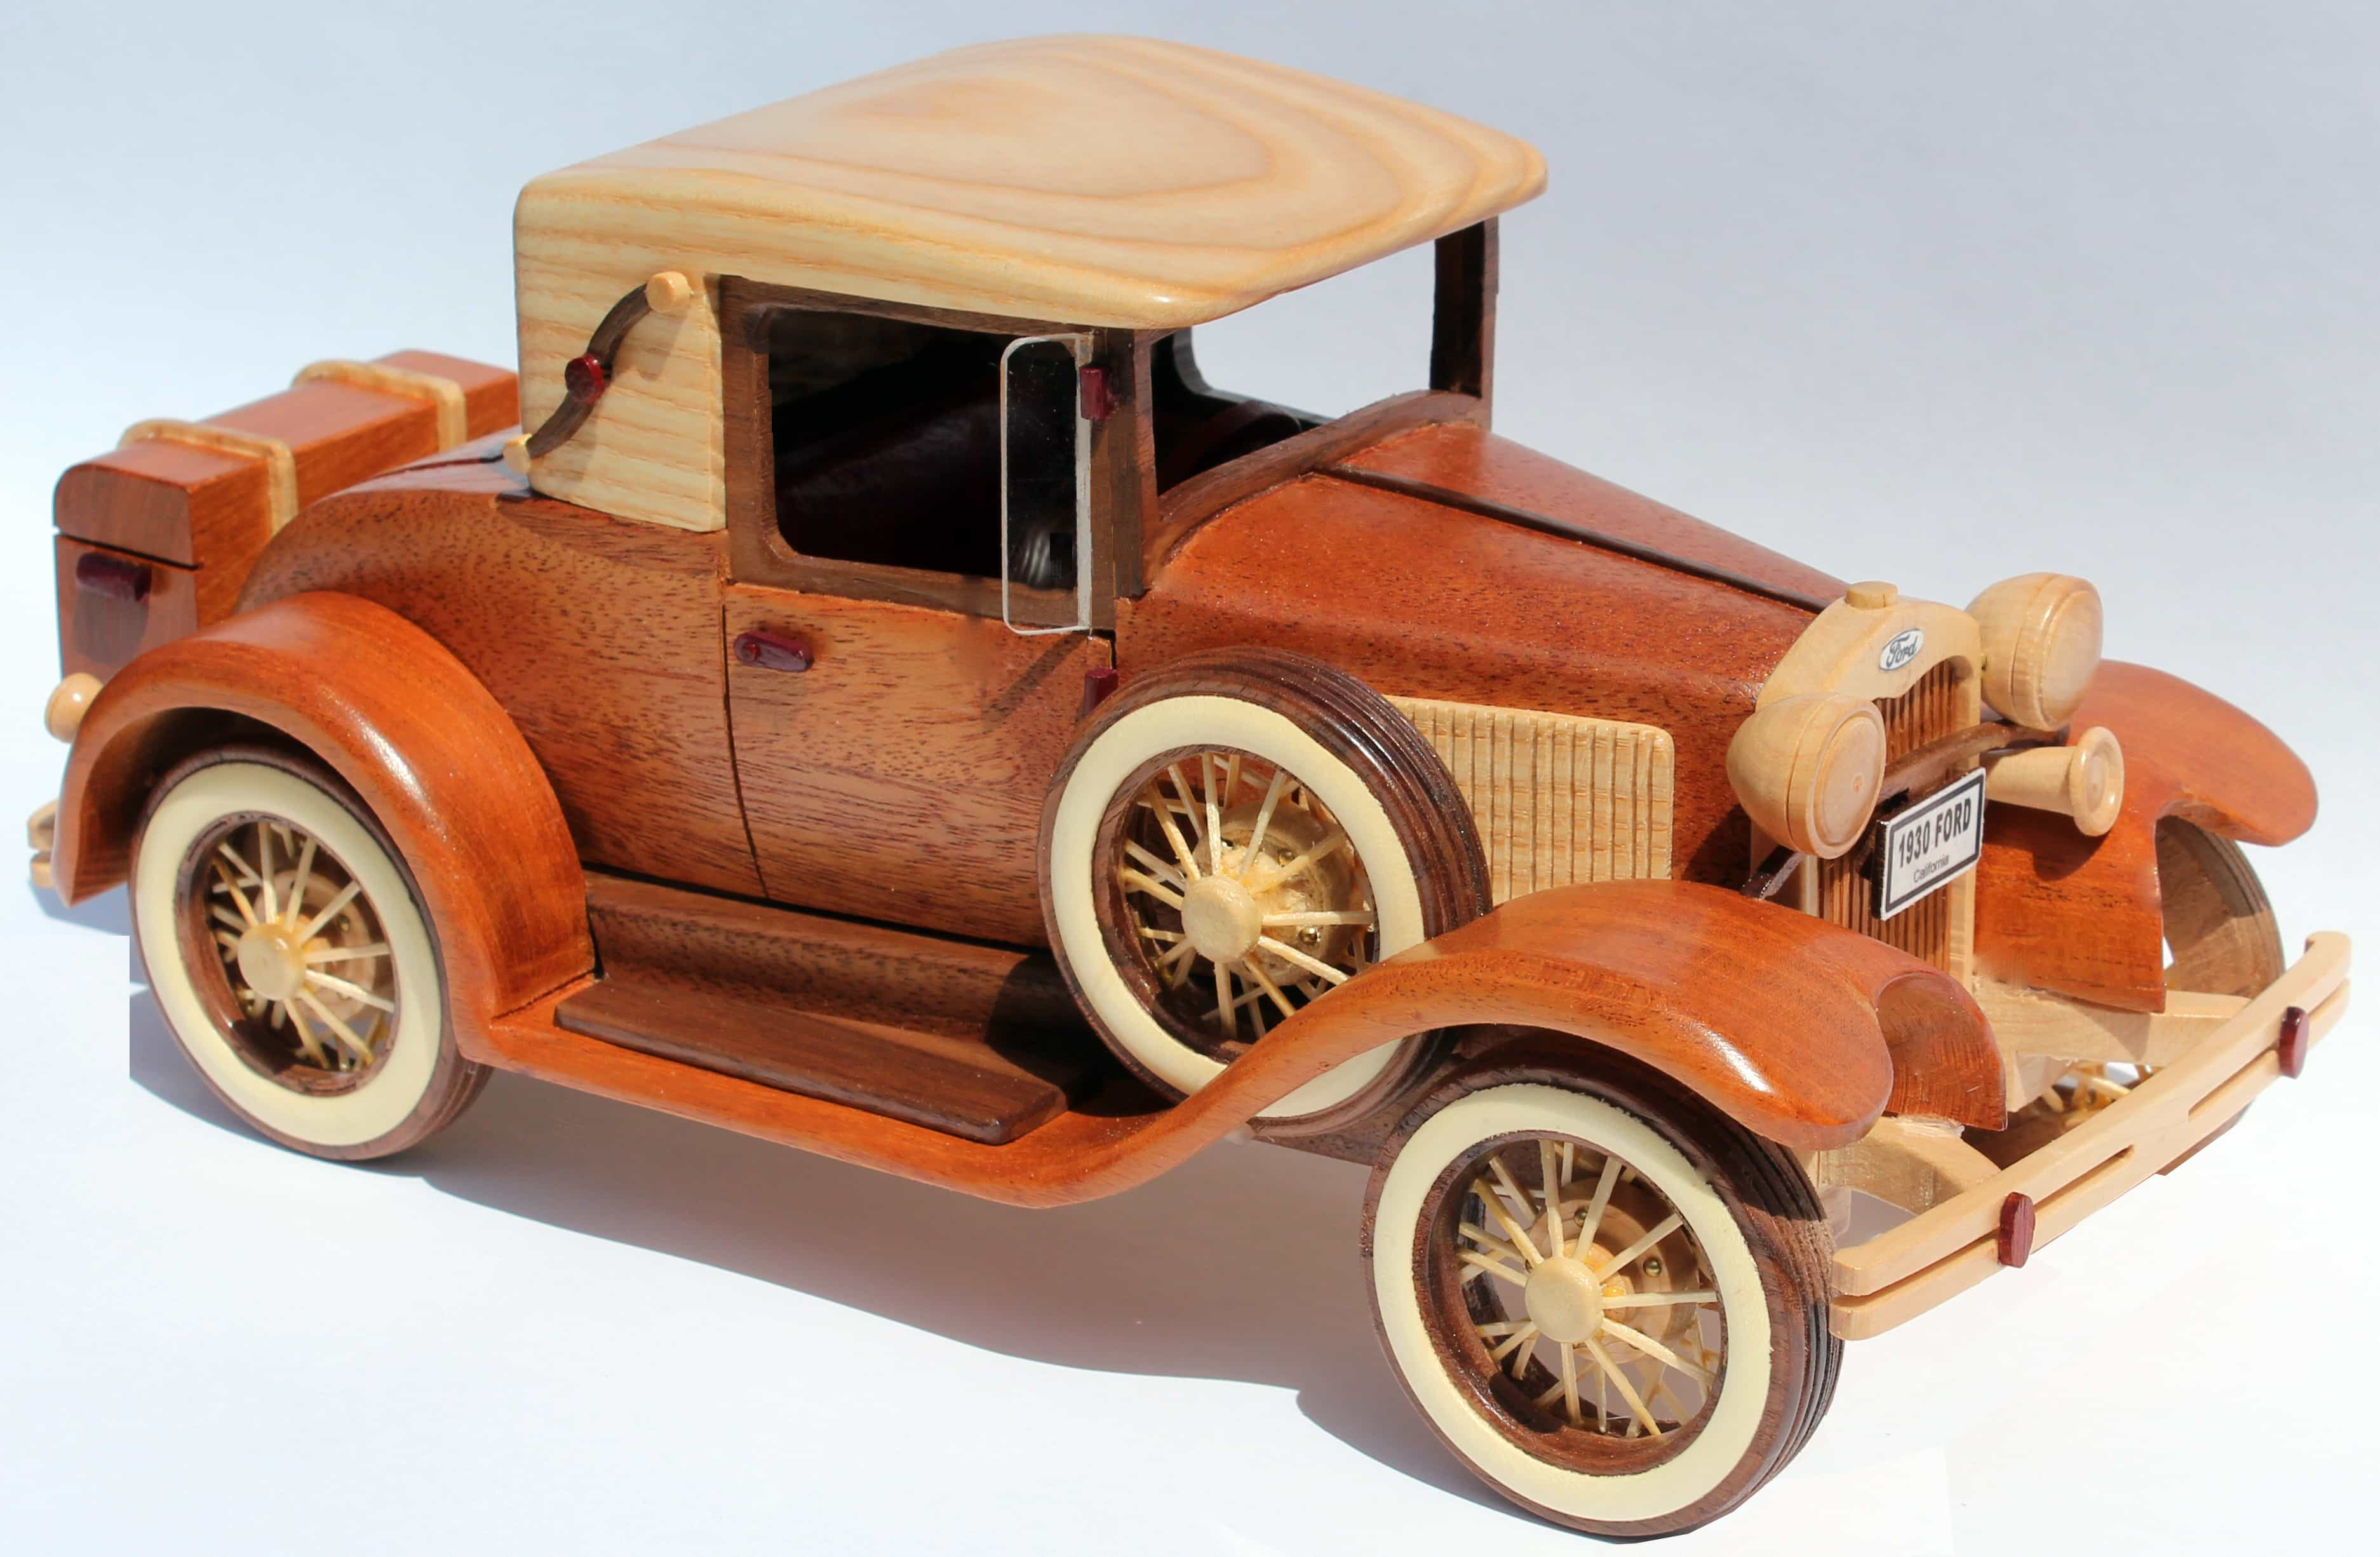 A woodworking plan for building the classic 1930 Ford Model A car